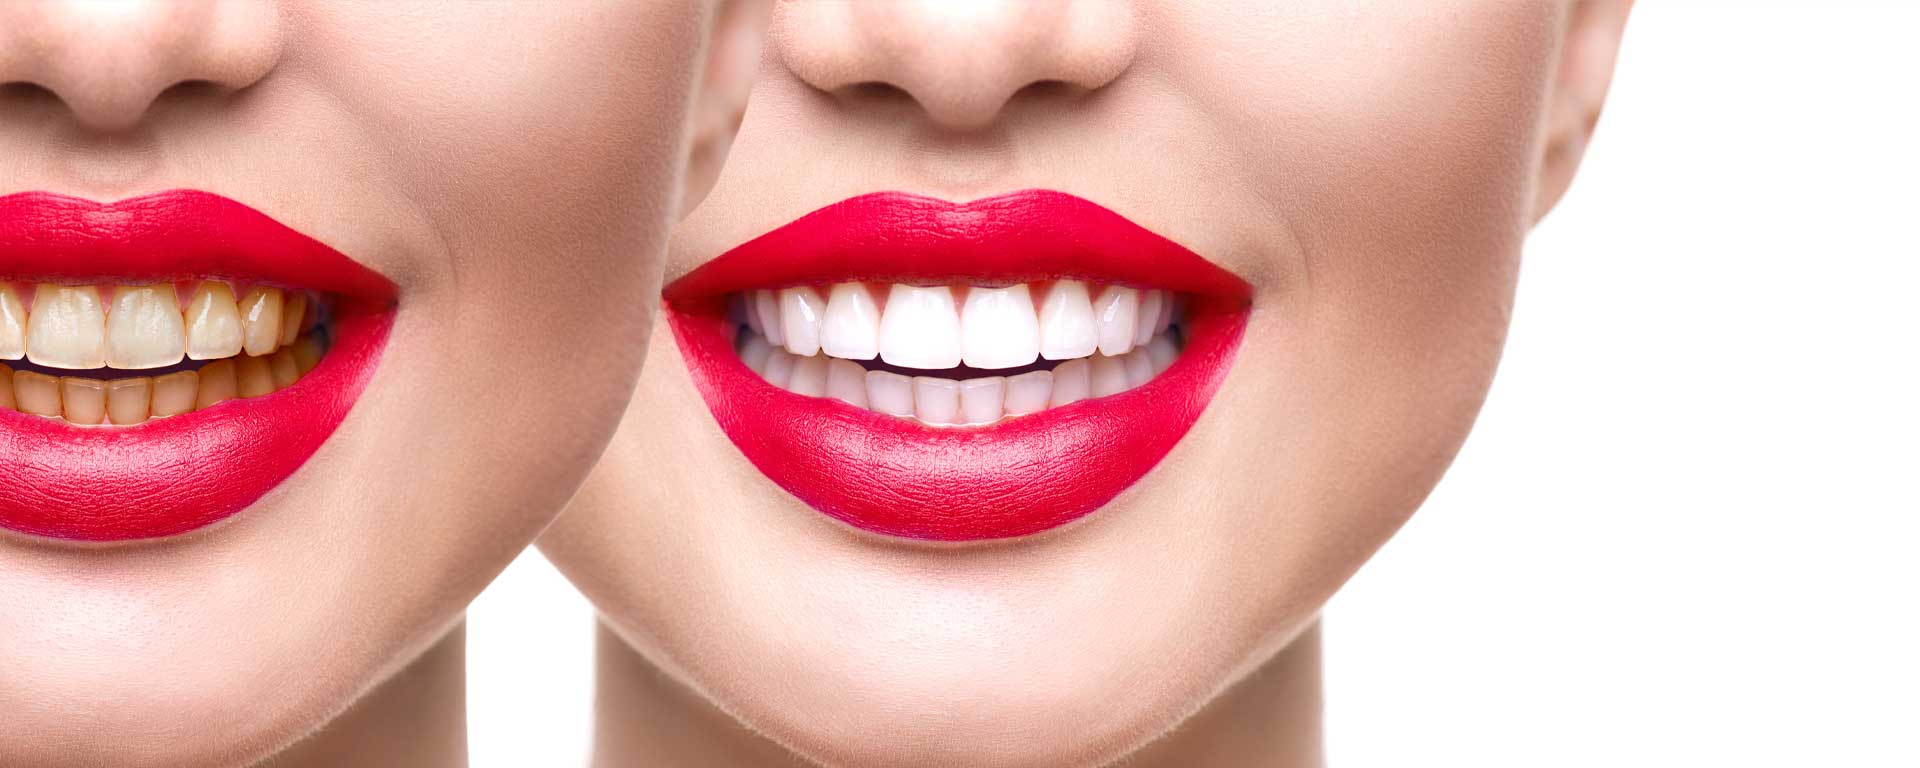 Teeth Bleaching and Whitening at Eden Shores Dental Care